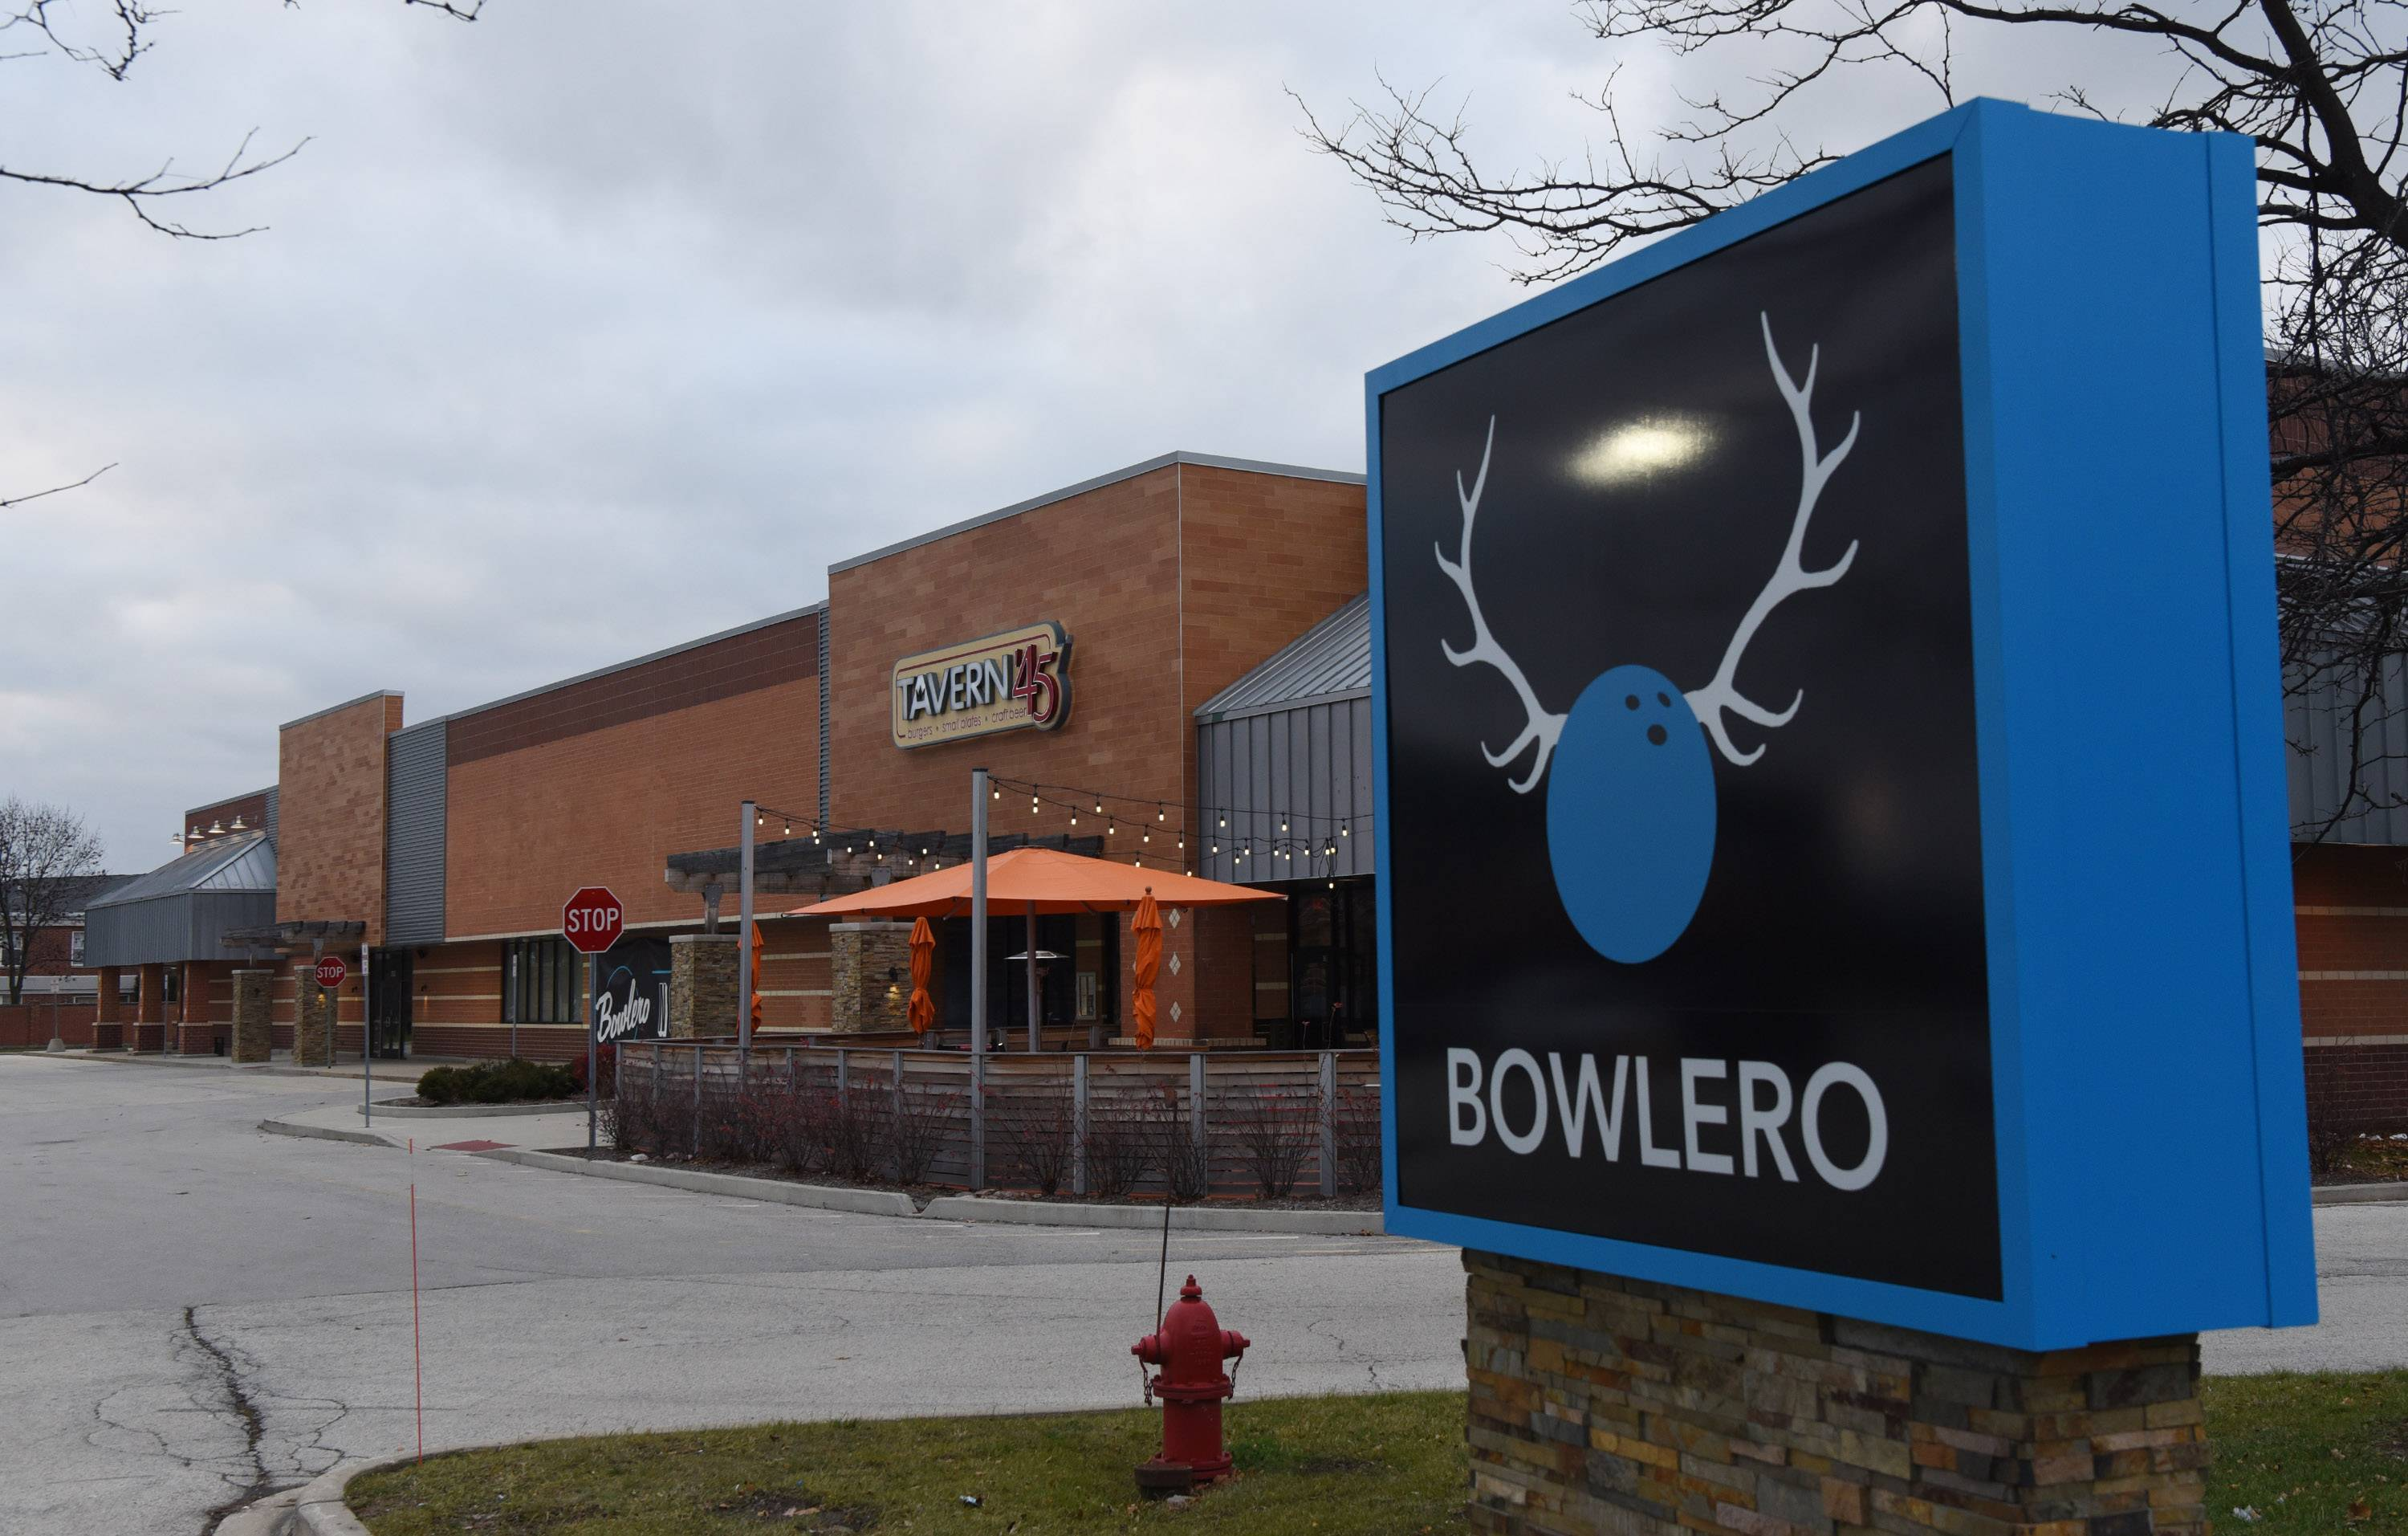 Brunswick Zone in Buffalo Grove is being redone with a new concept, with the grand opening of Bowlero Buffalo Grove on Tuesday. Bowlero Buffalo Grove features 32 lanes of bowling, a high-end sports bar and dining area, an interactive arcade, and a state-of-the-art laser tag arena.